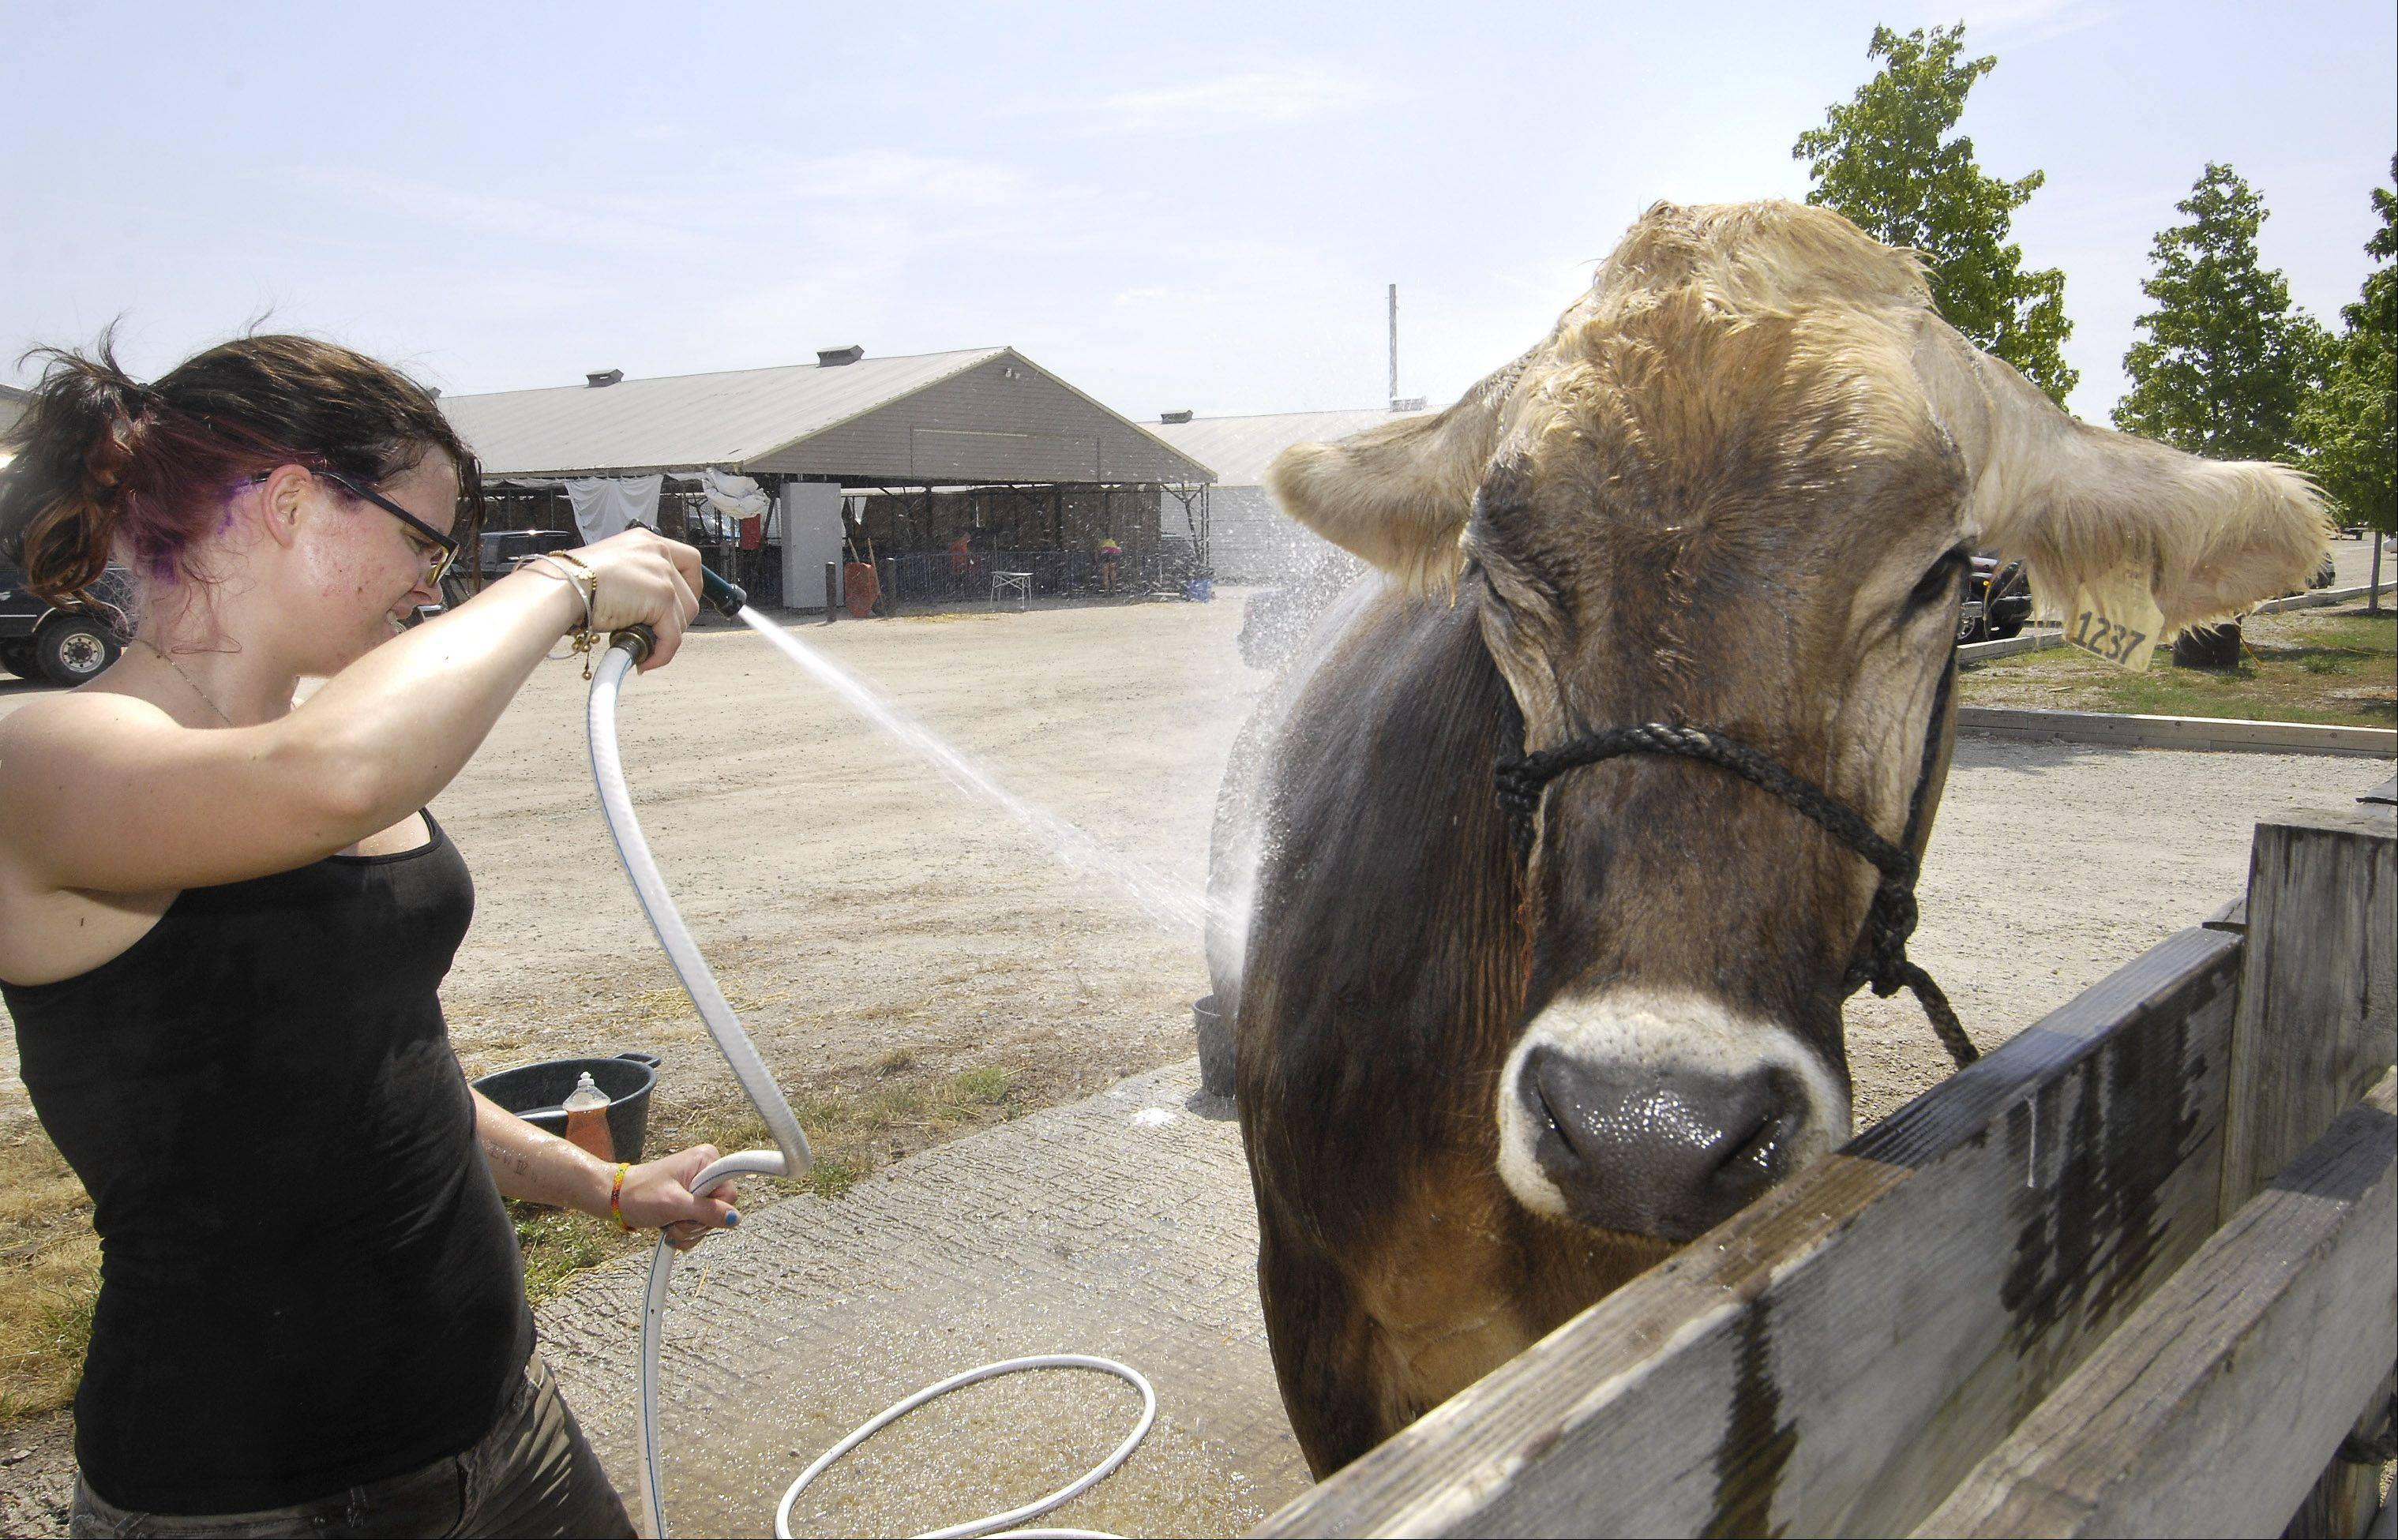 Images: The 2011 Kane County Fair